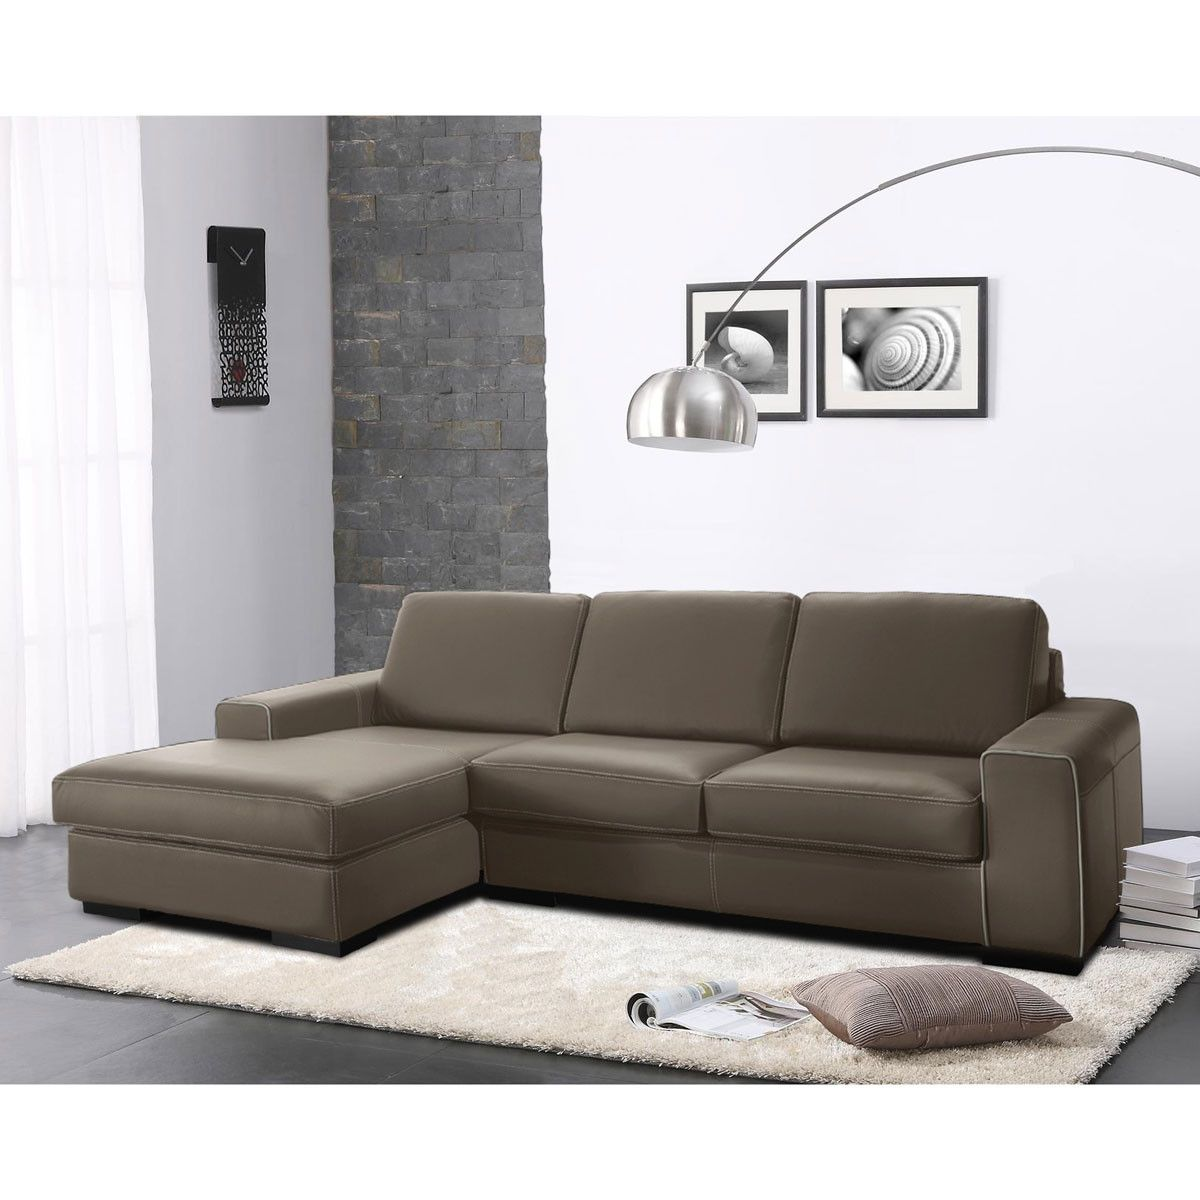 Soldes Canape Auchan Canape D Angle Gauche Sandy In 2020 Sectional Couch Home Decor